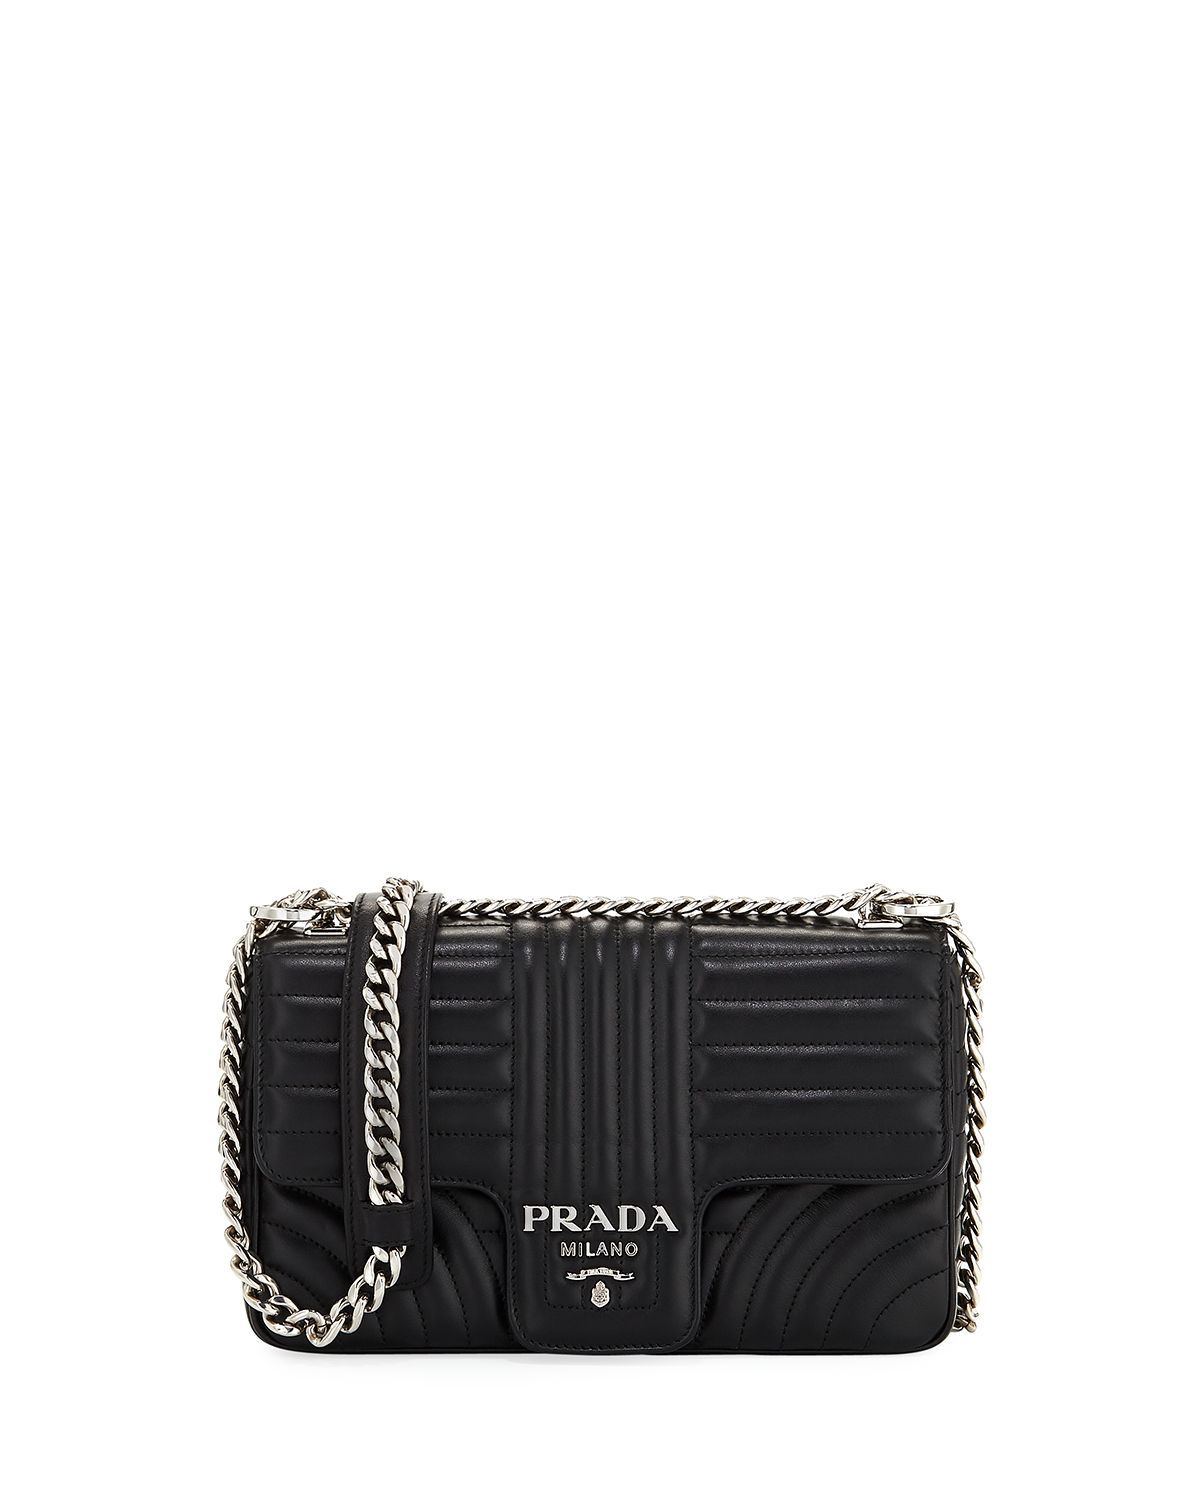 39f91732371f51 Prada Medium Diagramme Shoulder Bag | Neiman Marcus